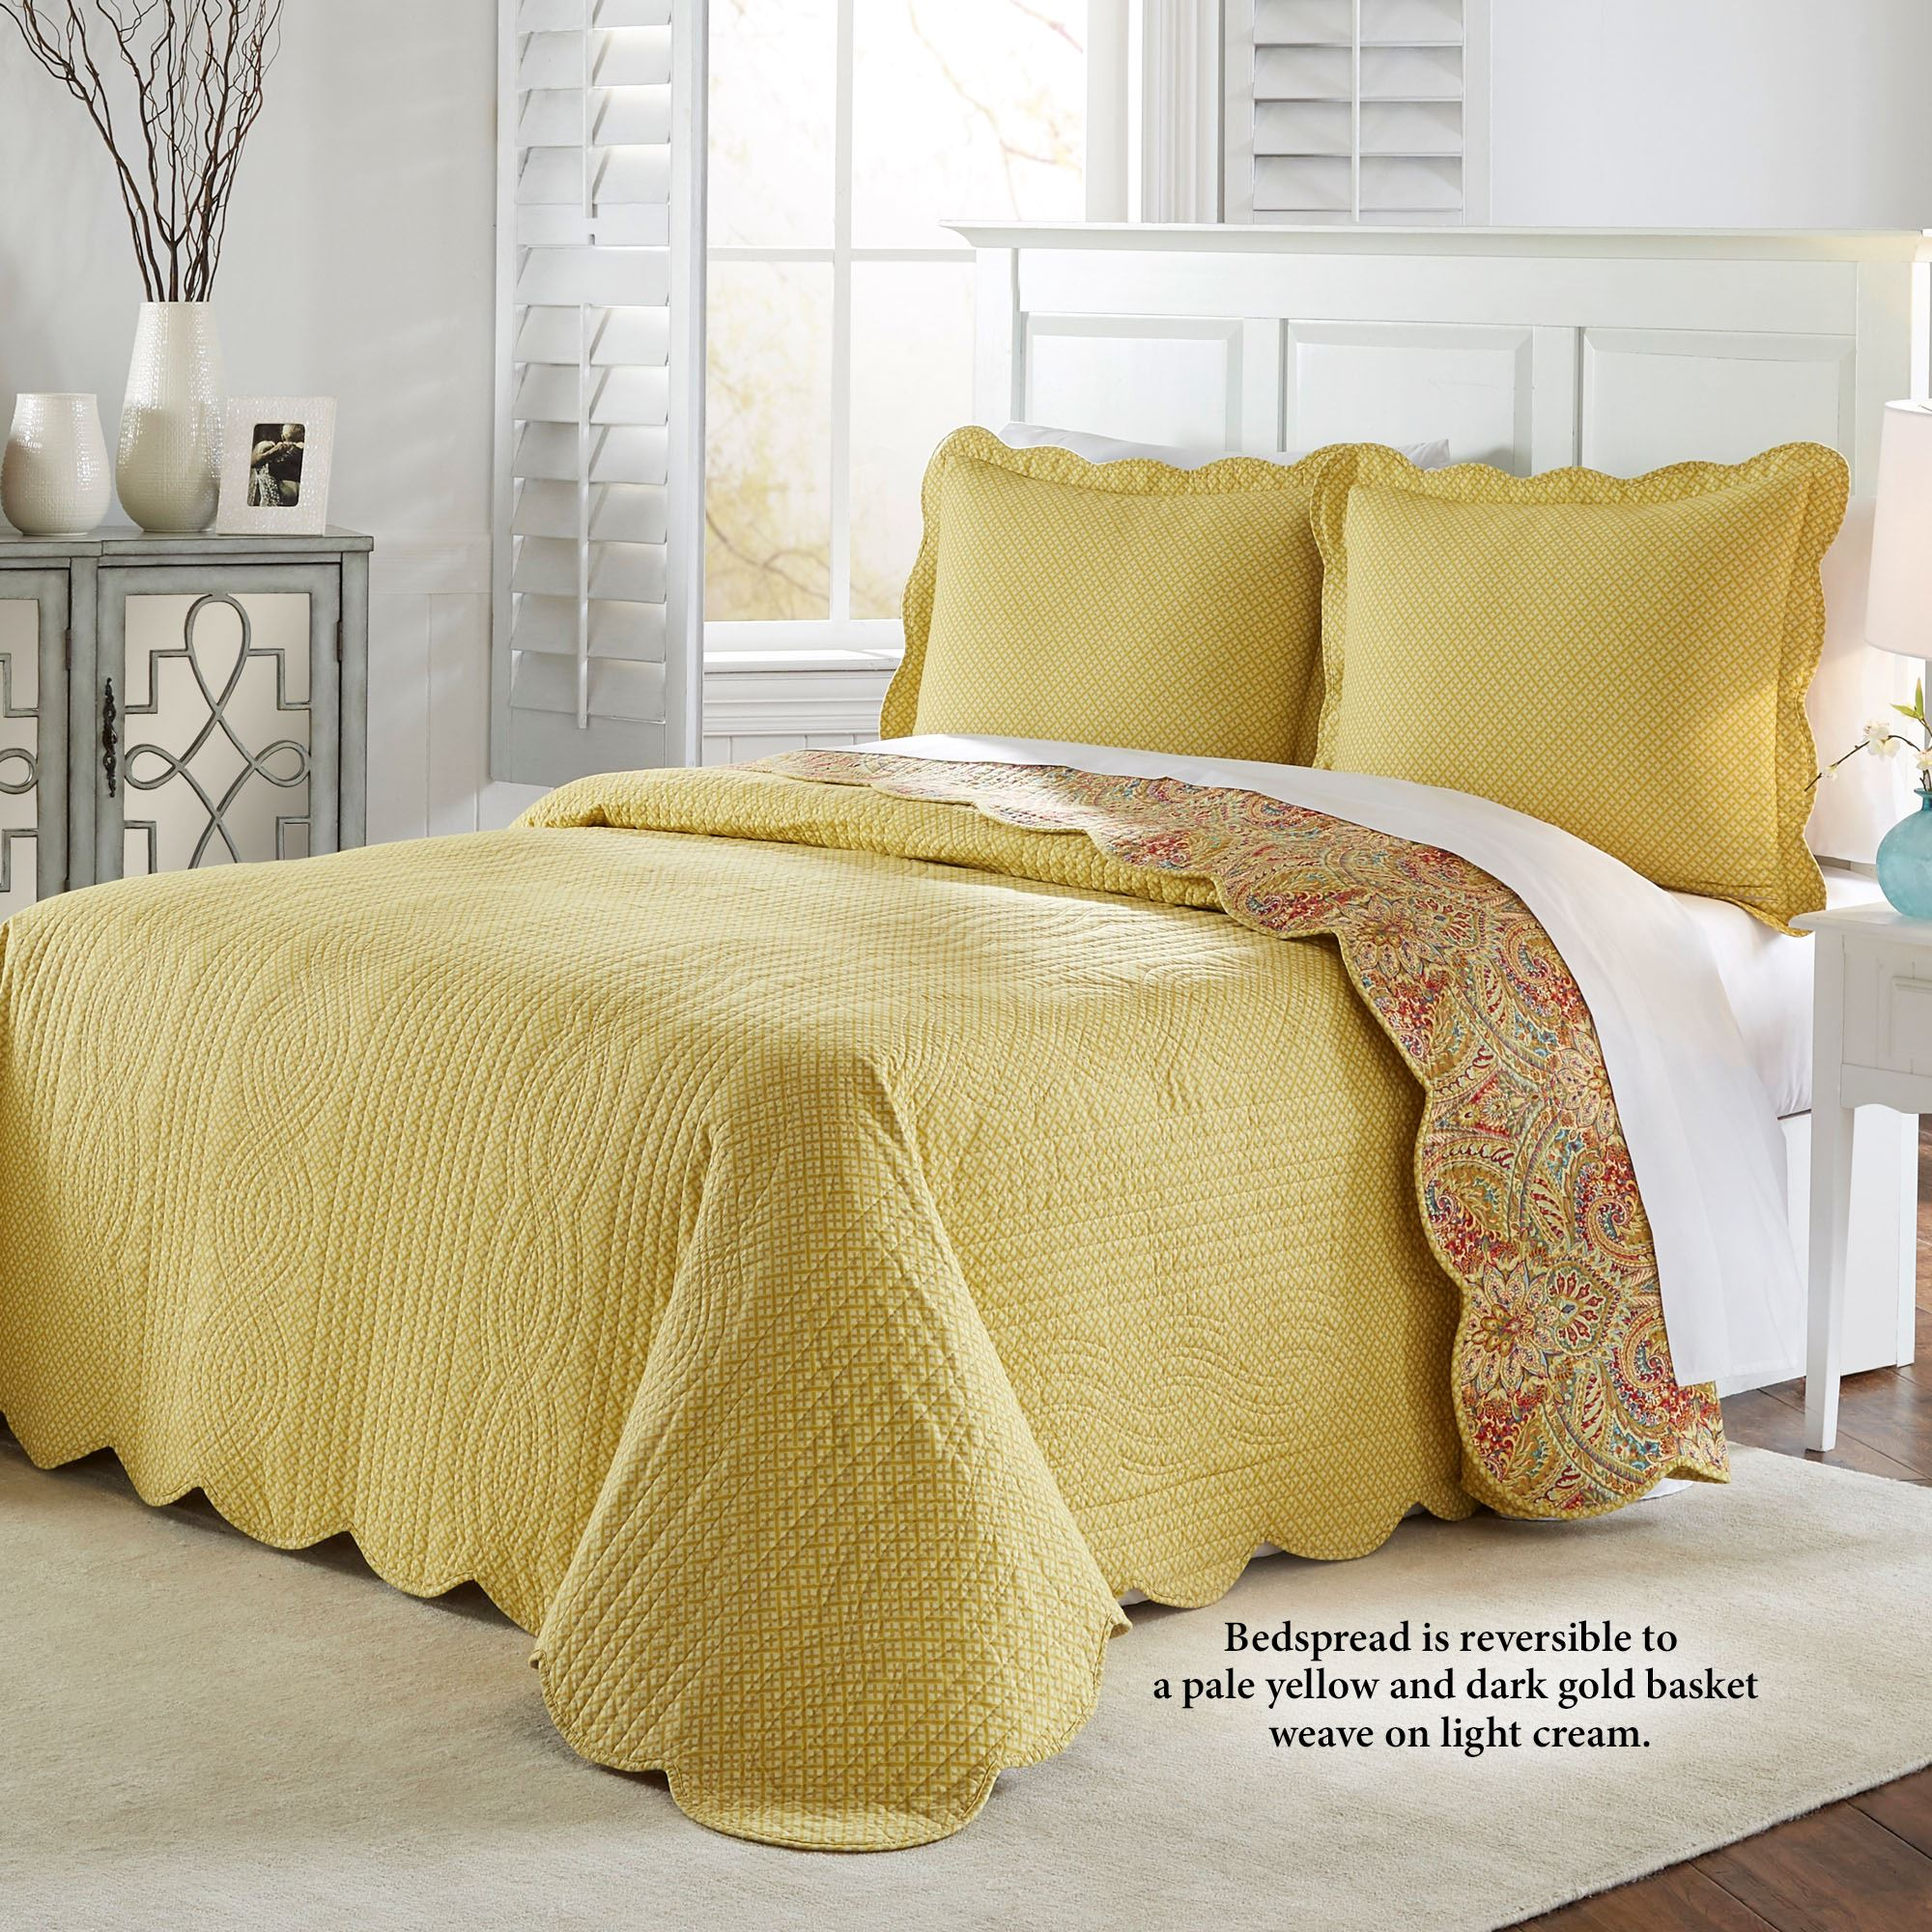 Well-known Swept Away Reversible Quilted Bedspread Set by Waverly ZM38